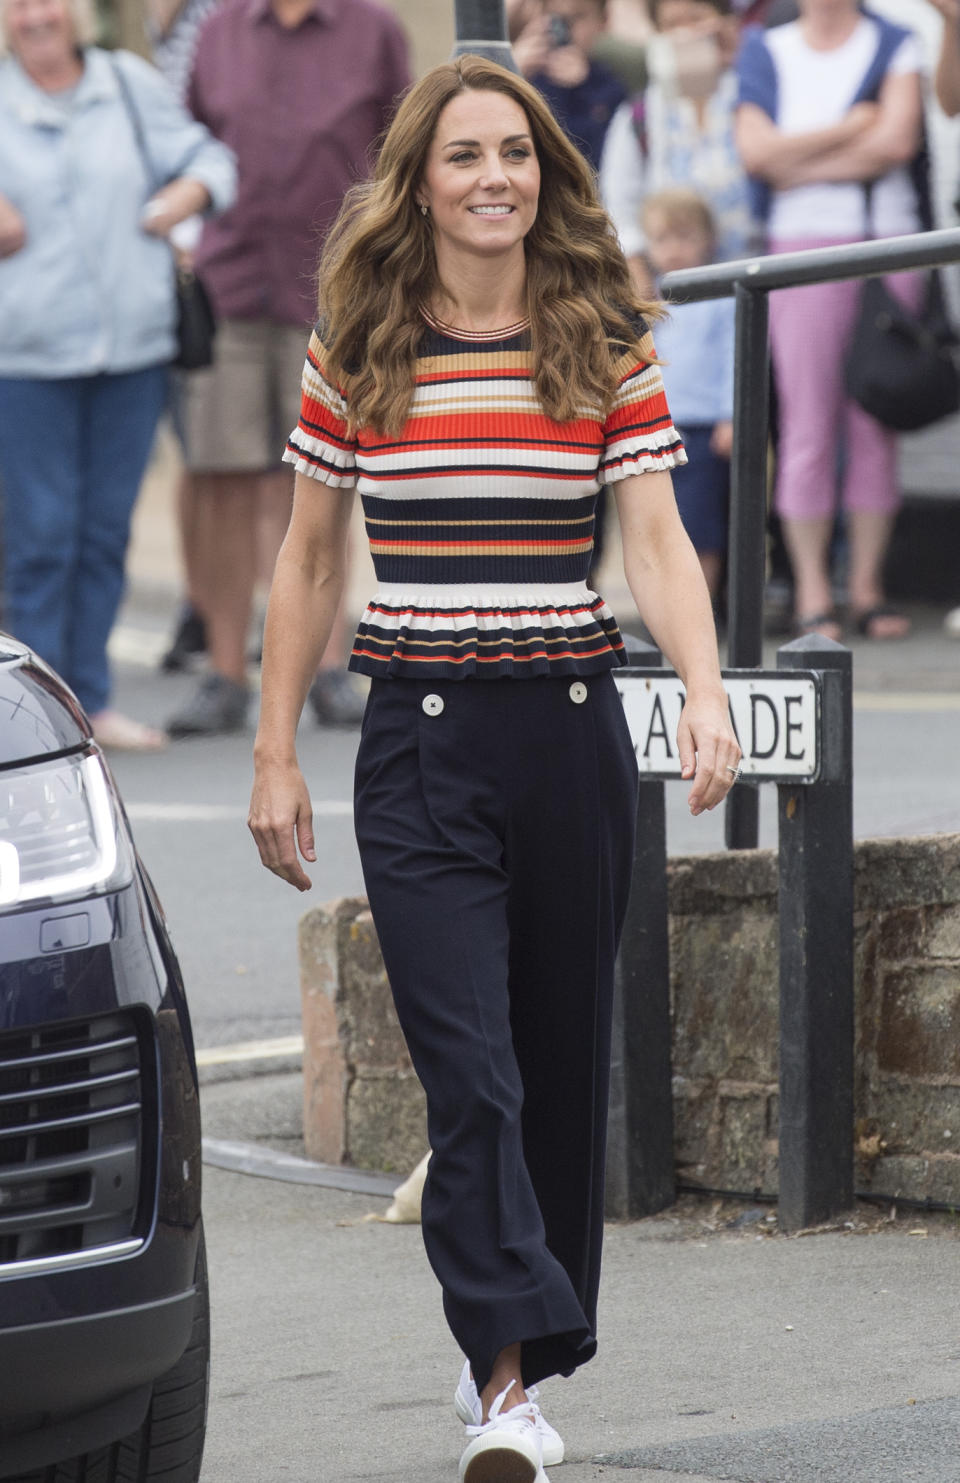 The duchess previously wore a top from the French brand to last summer's King's Cup regatta (Getty Images)